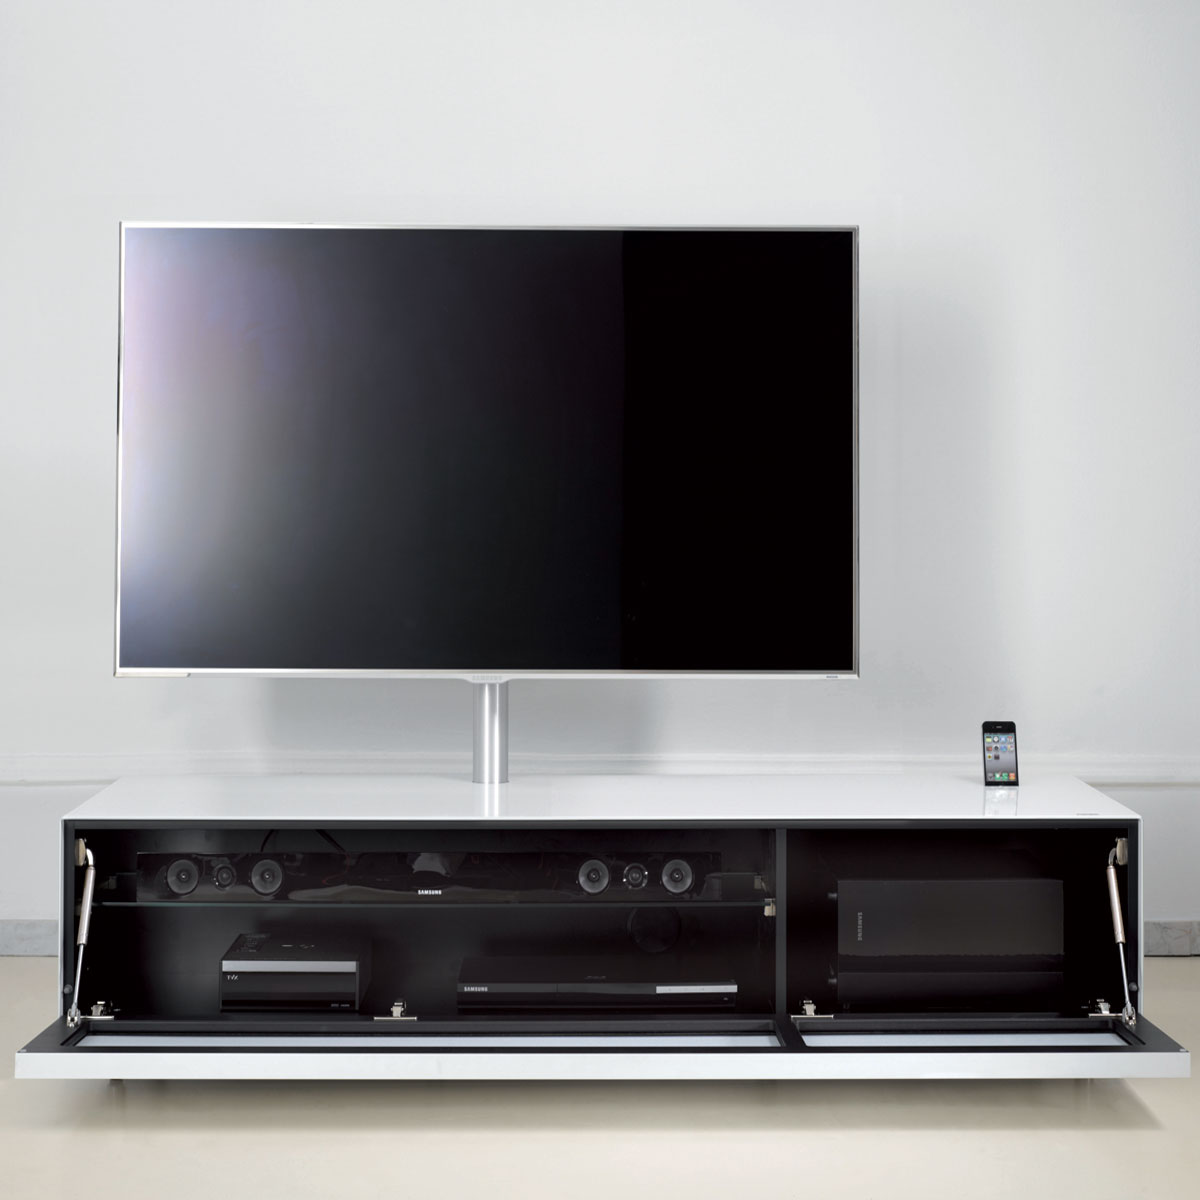 hifi m bel archive seite 2 von 4 tv m bel und hifi m bel guide. Black Bedroom Furniture Sets. Home Design Ideas